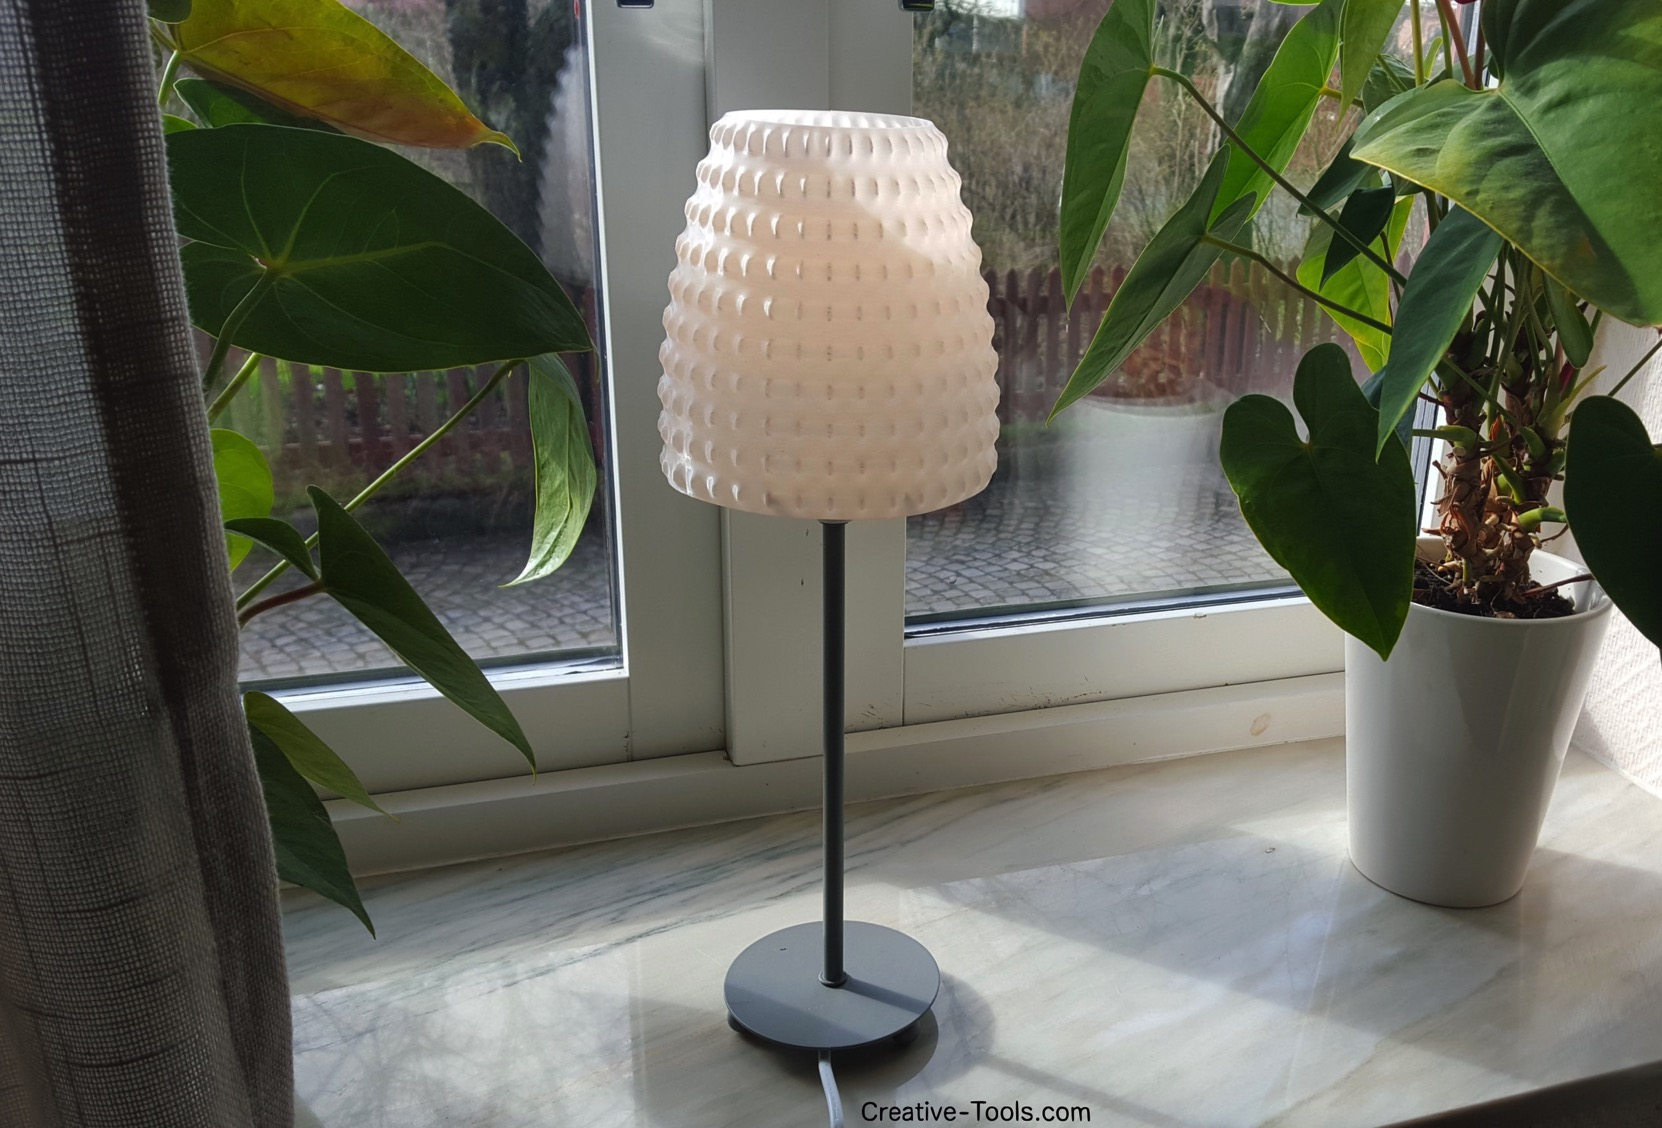 3D-printable lampshade for standard light fixture